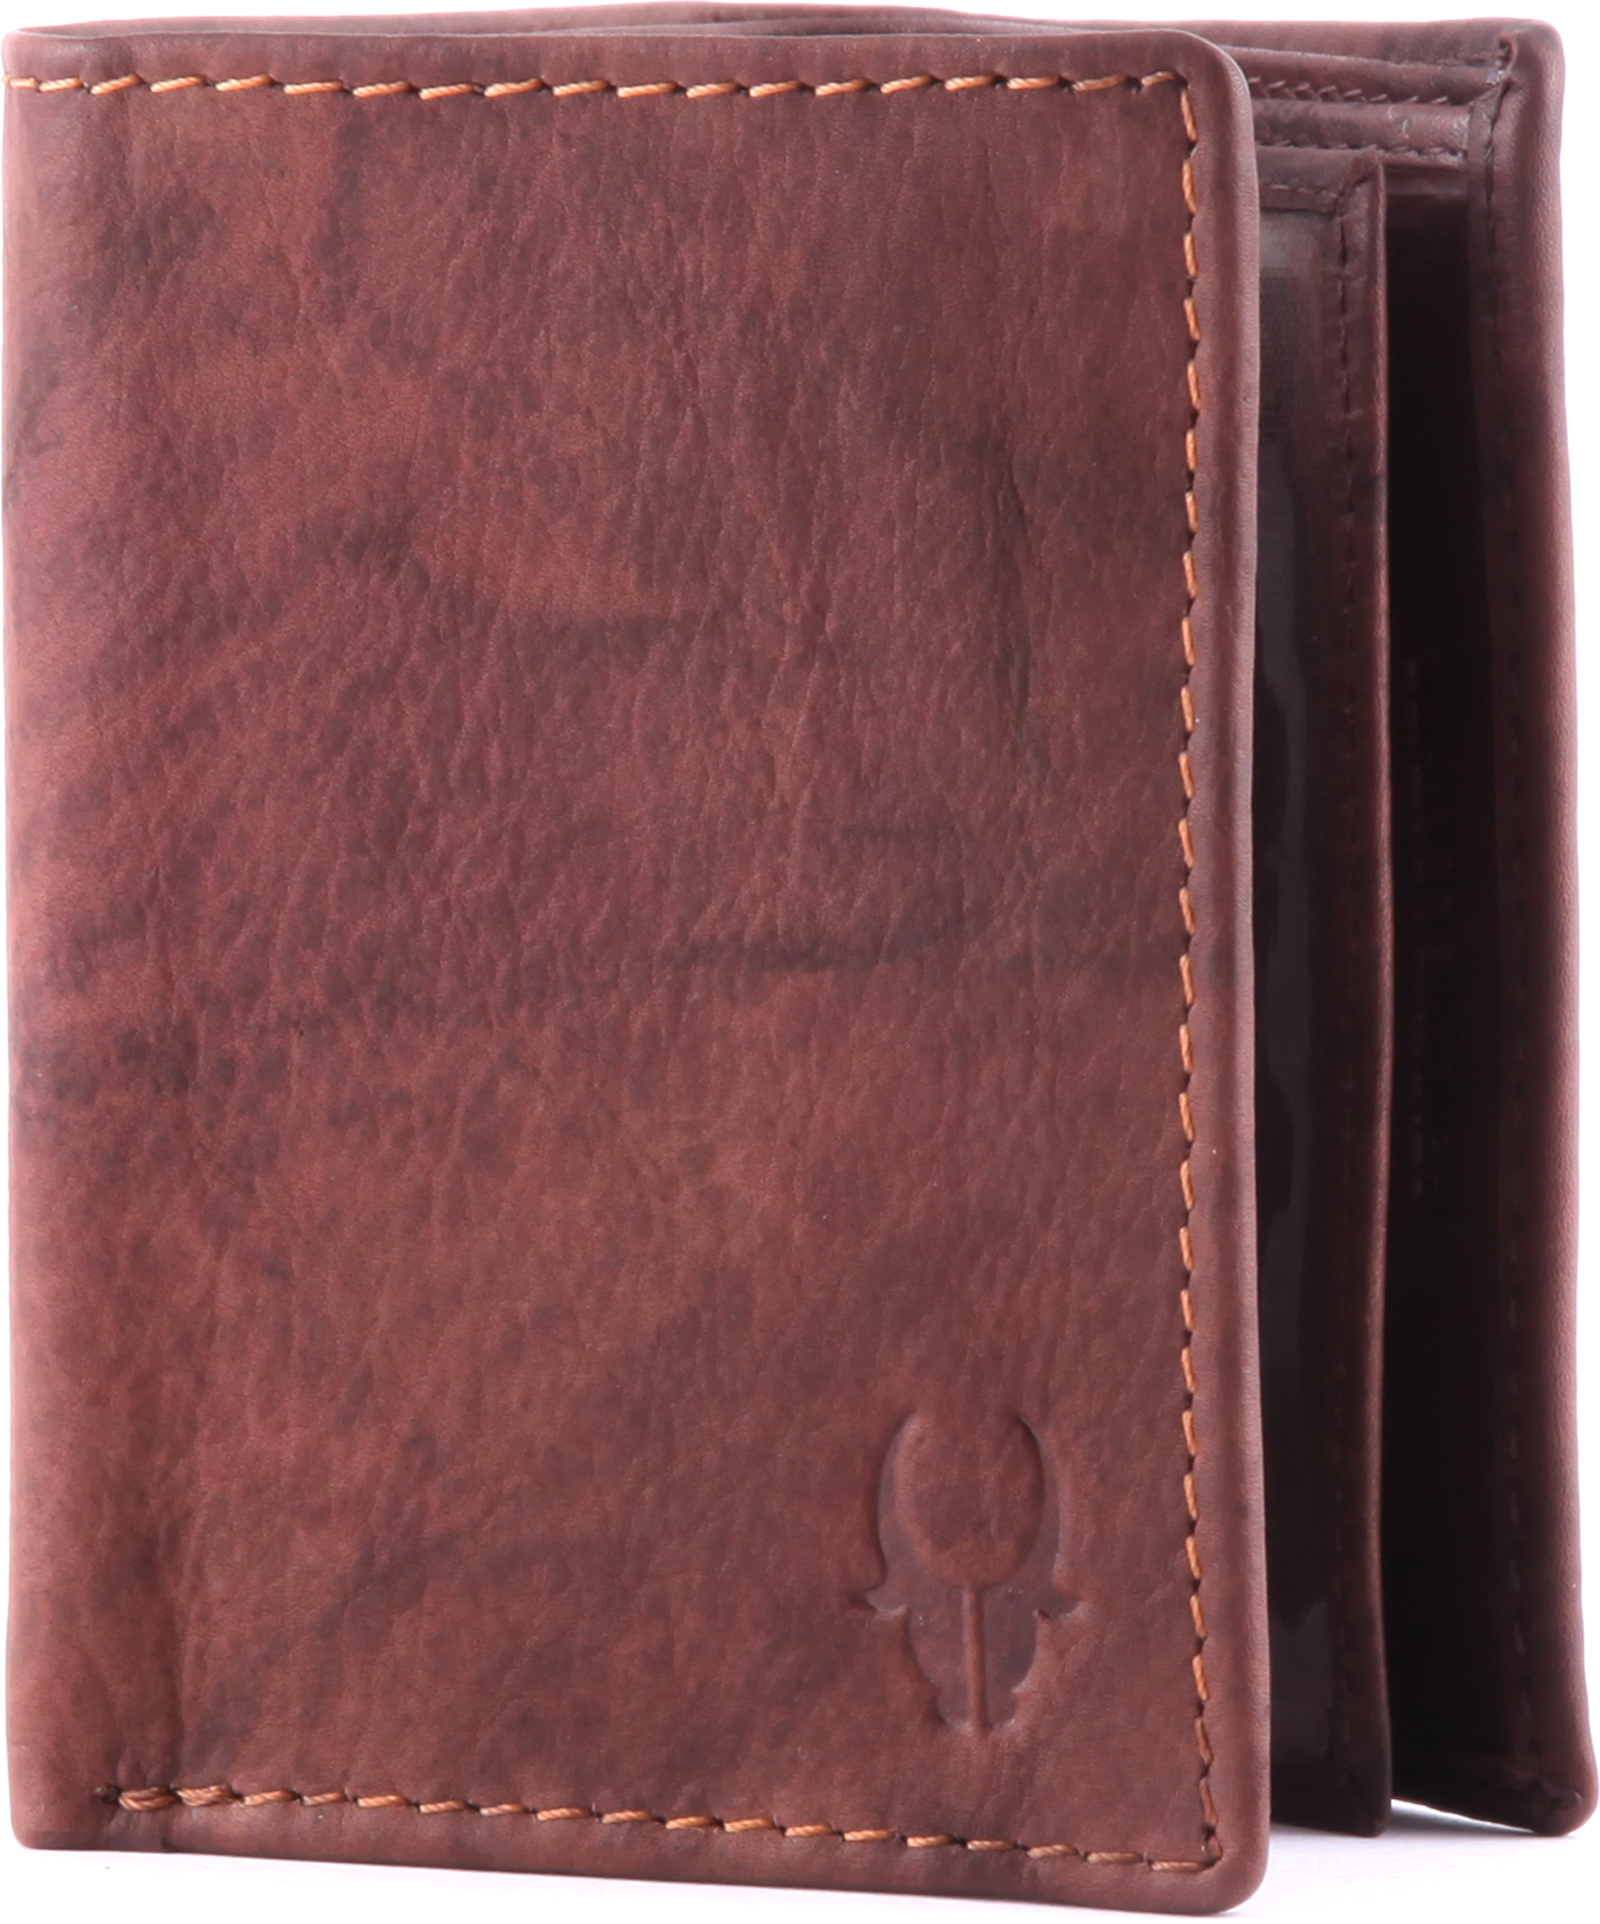 WildHorn Men Genuine Leather Stylish Wallet WH248GW  Synthetic leather/Rexine